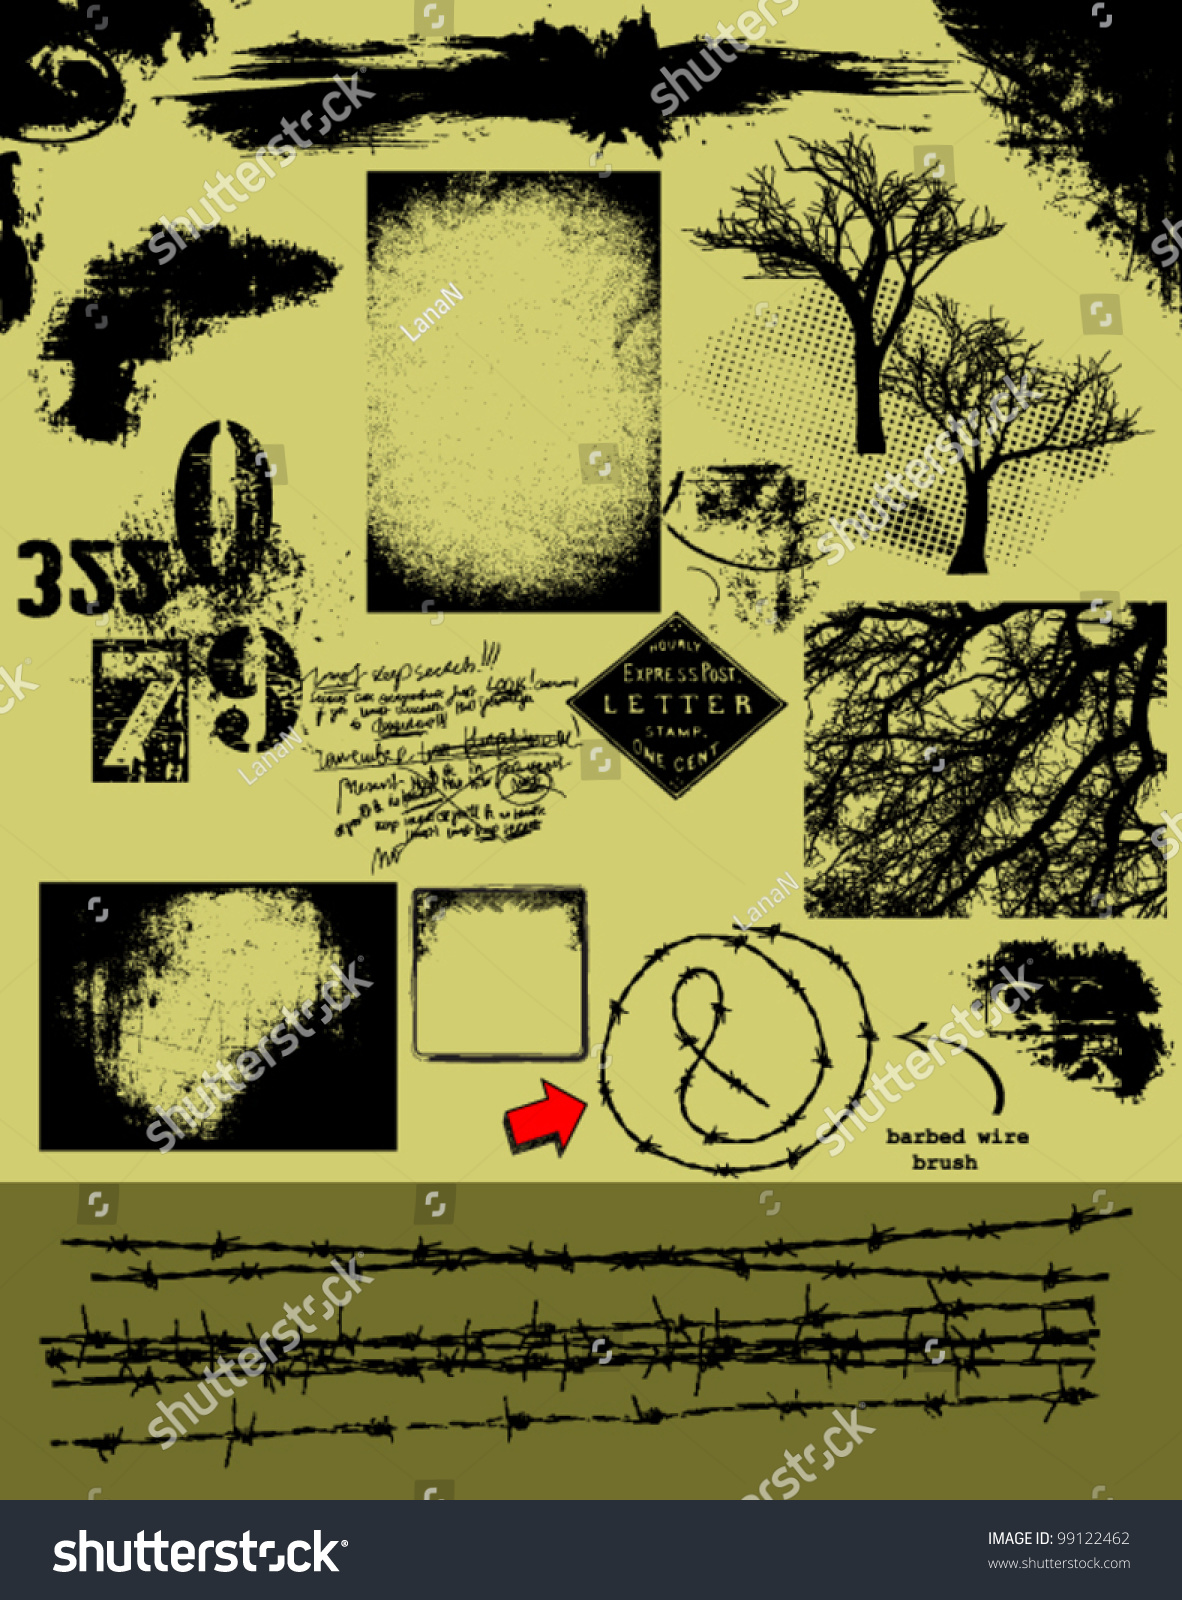 Barbed wire vector brush - Grunge Vector Pack_ Barbed Wire Brush Backgrounds Overlays Textures Trees Corners And Other Grunge Design Elements For Graphic Artists And Designers